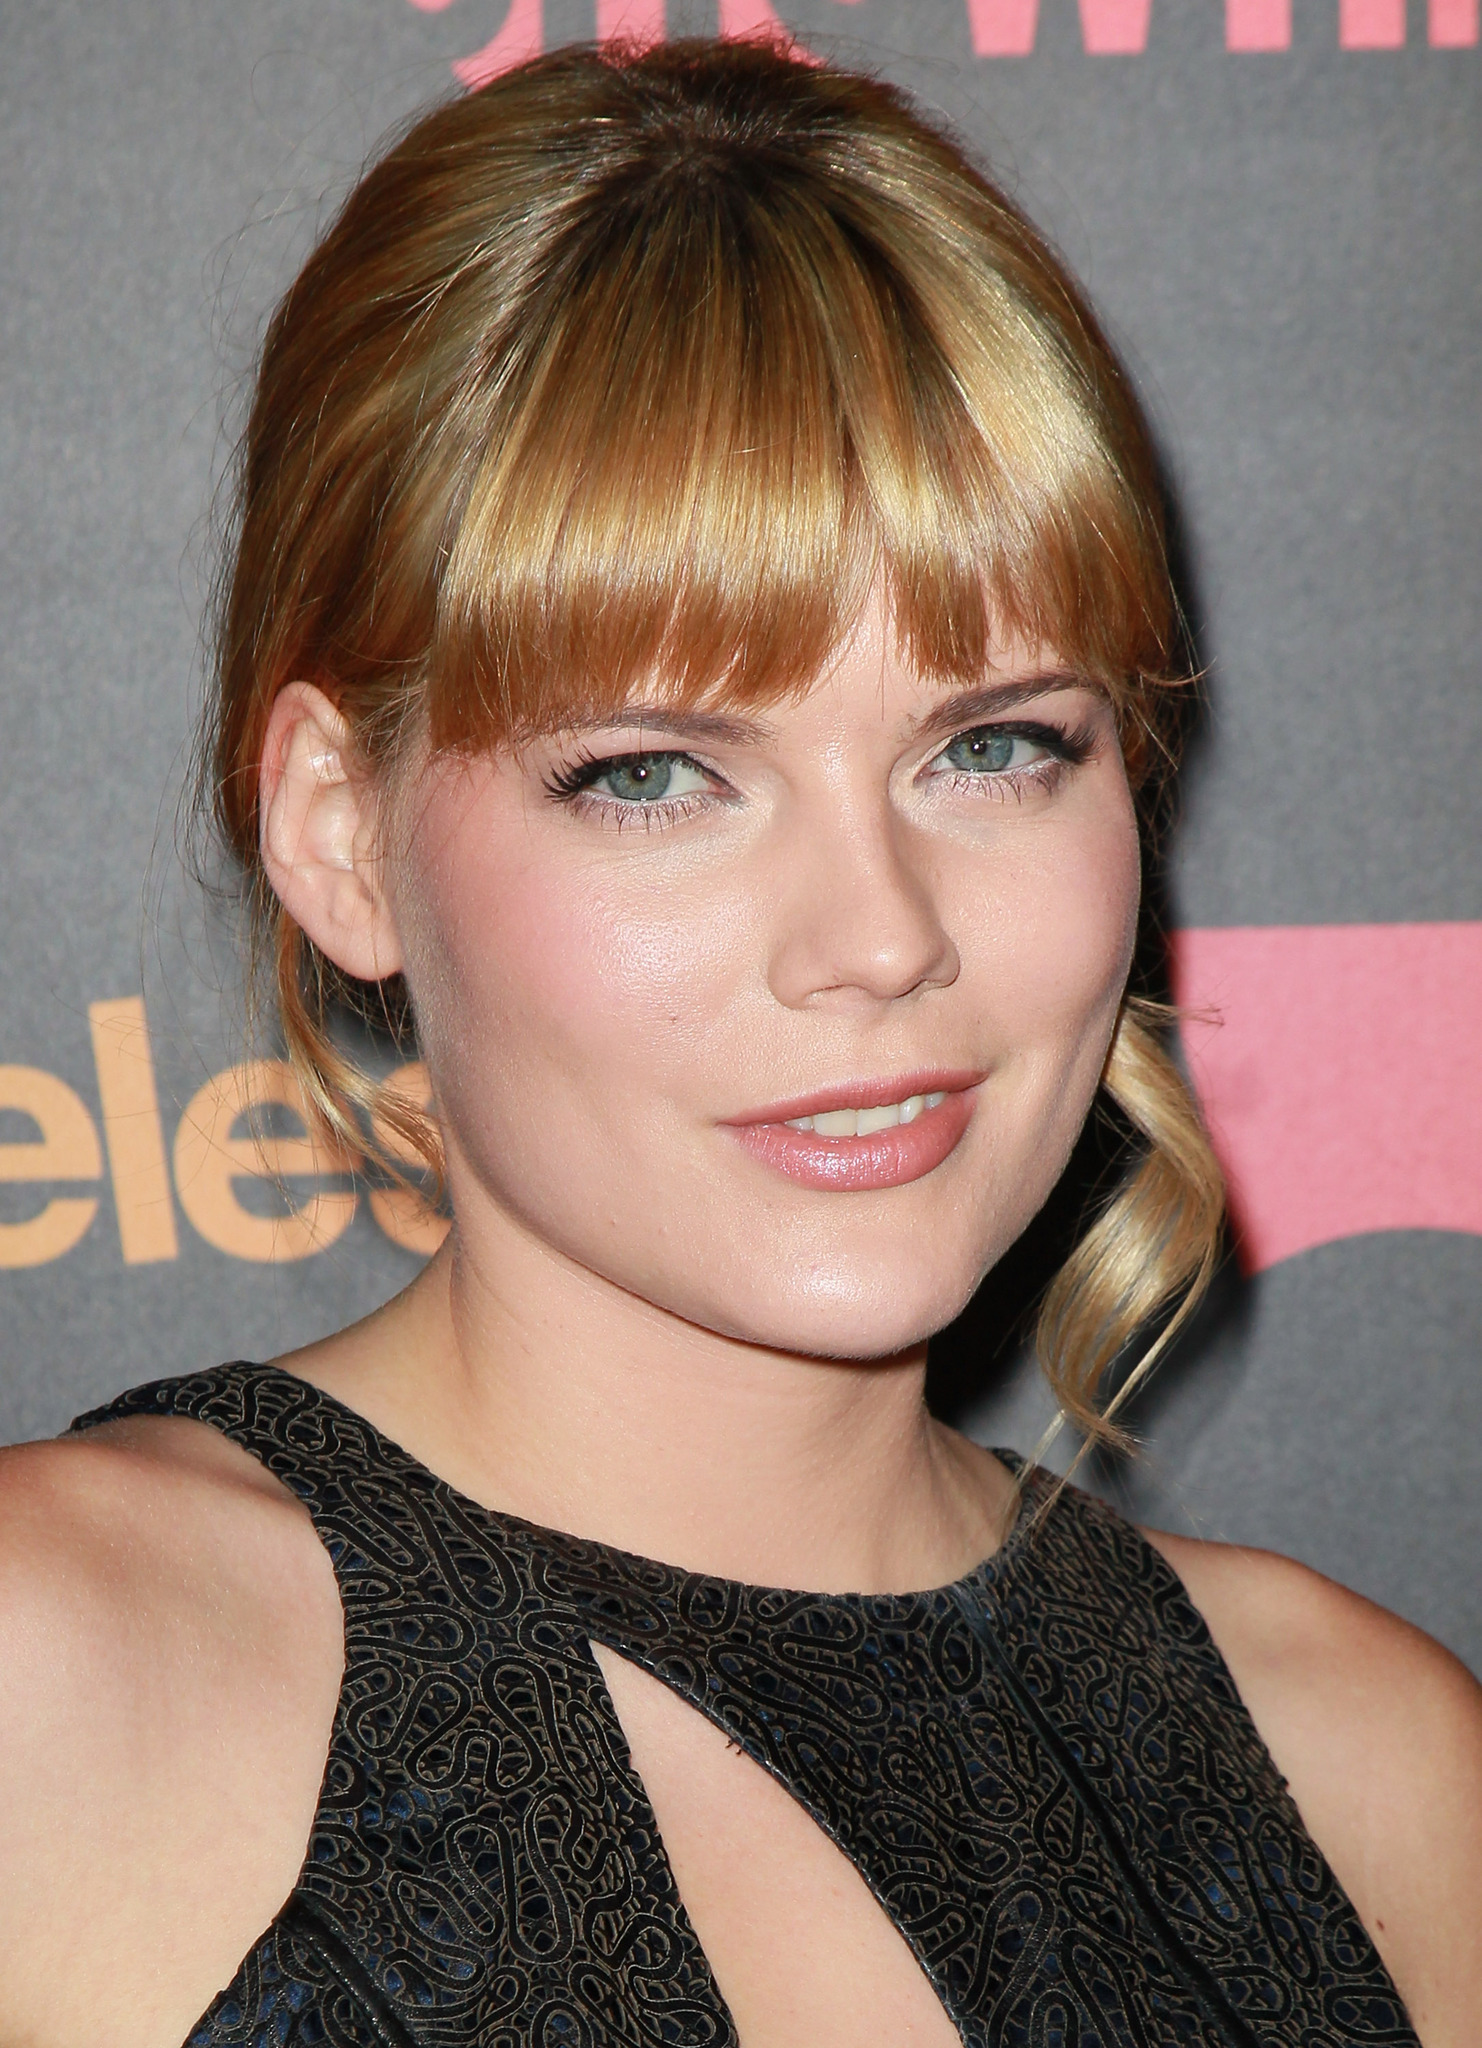 Poze Emma Greenwell - Actor - Poza 3 din 5 - CineMagia.ro